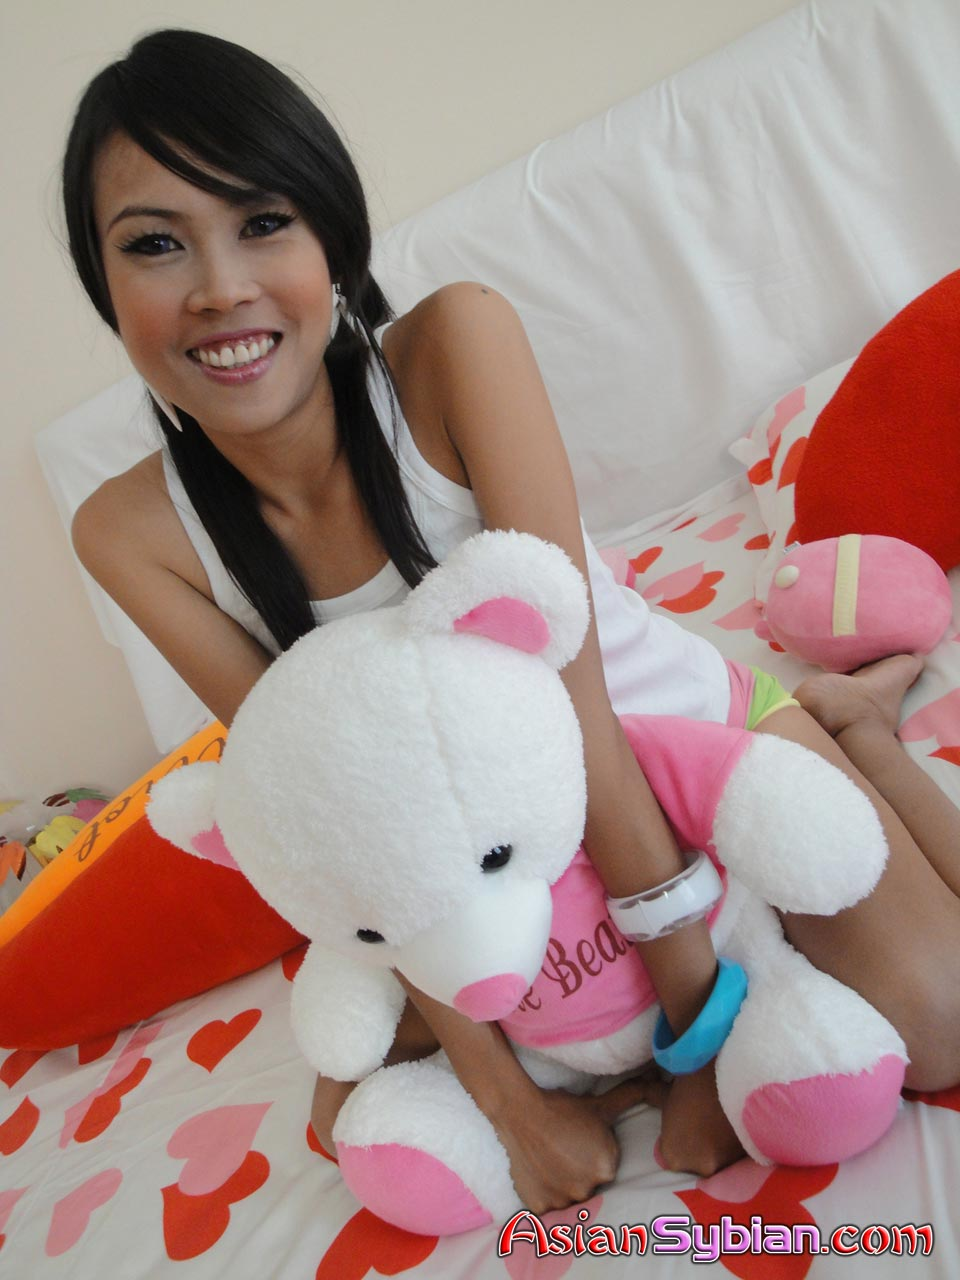 fuckable-asian-american-girl-swimming-breasts-video